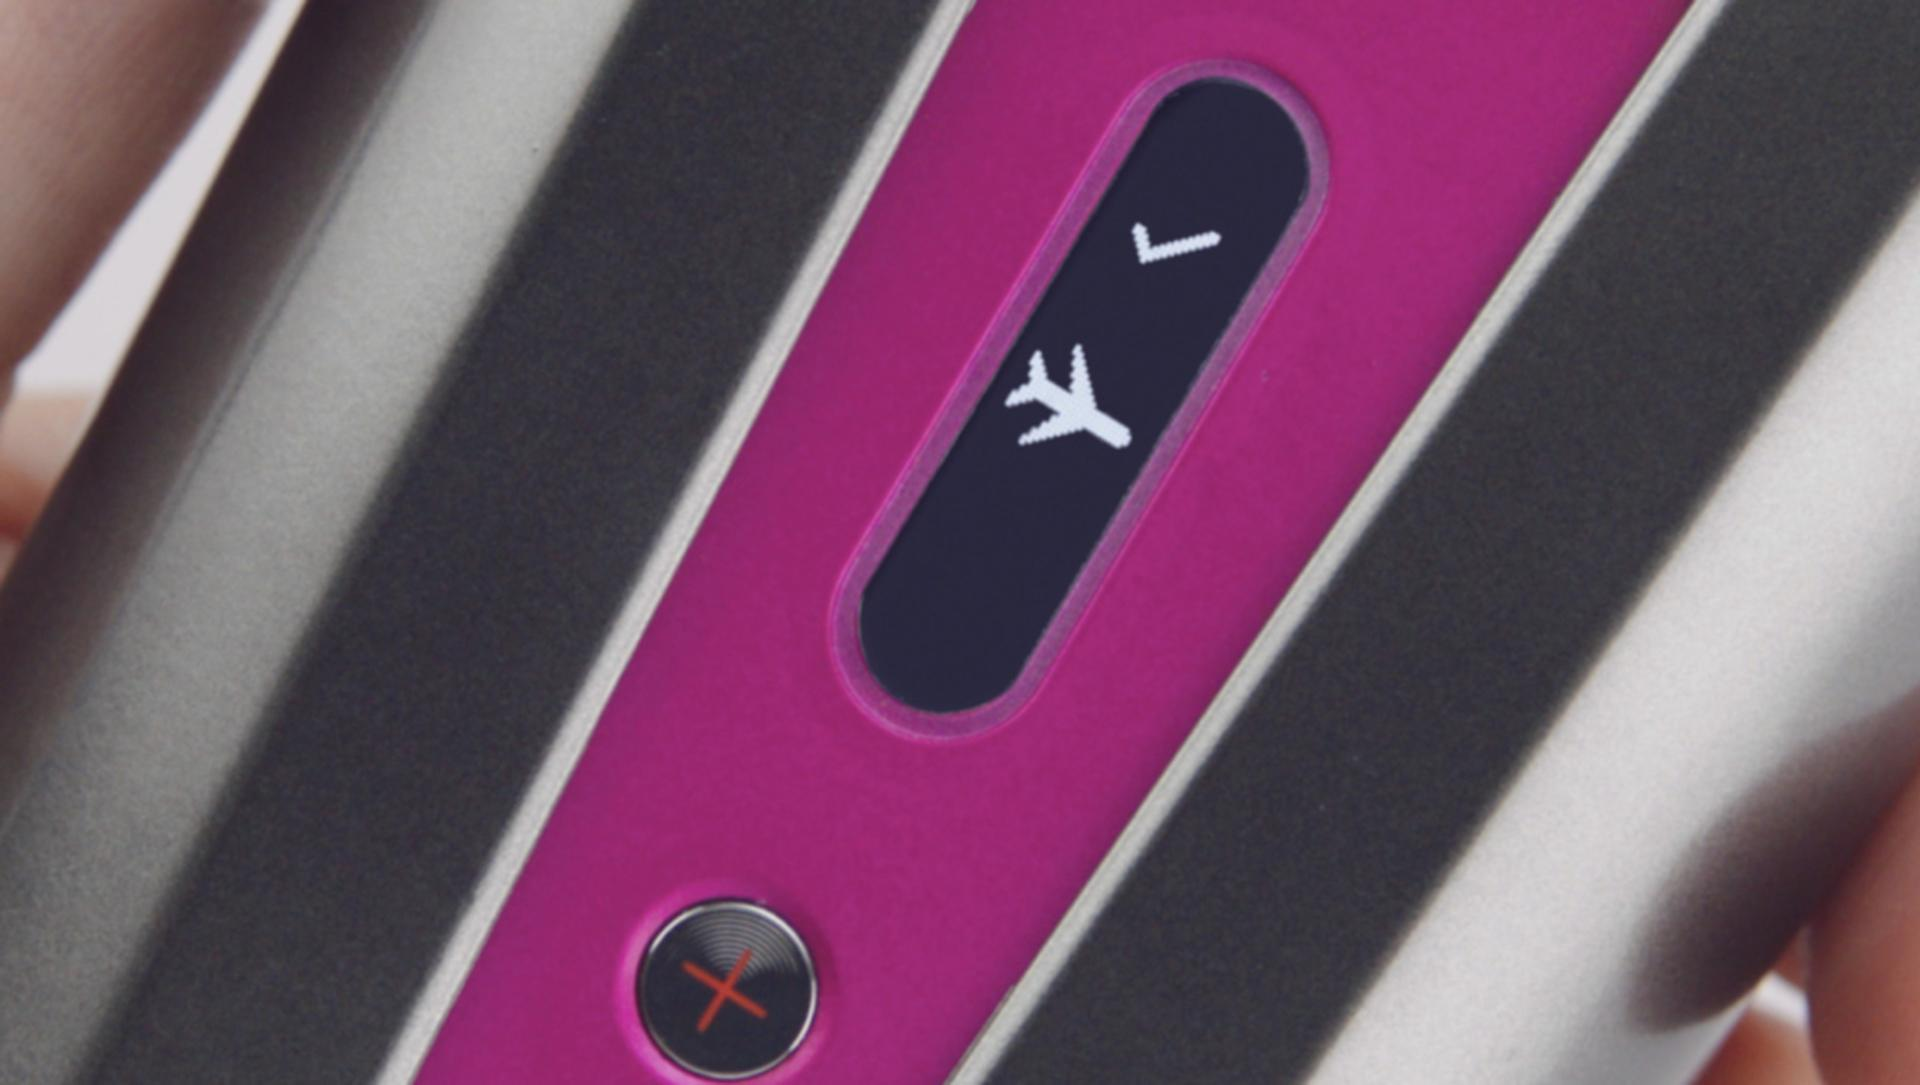 Aeroplane icon on screen